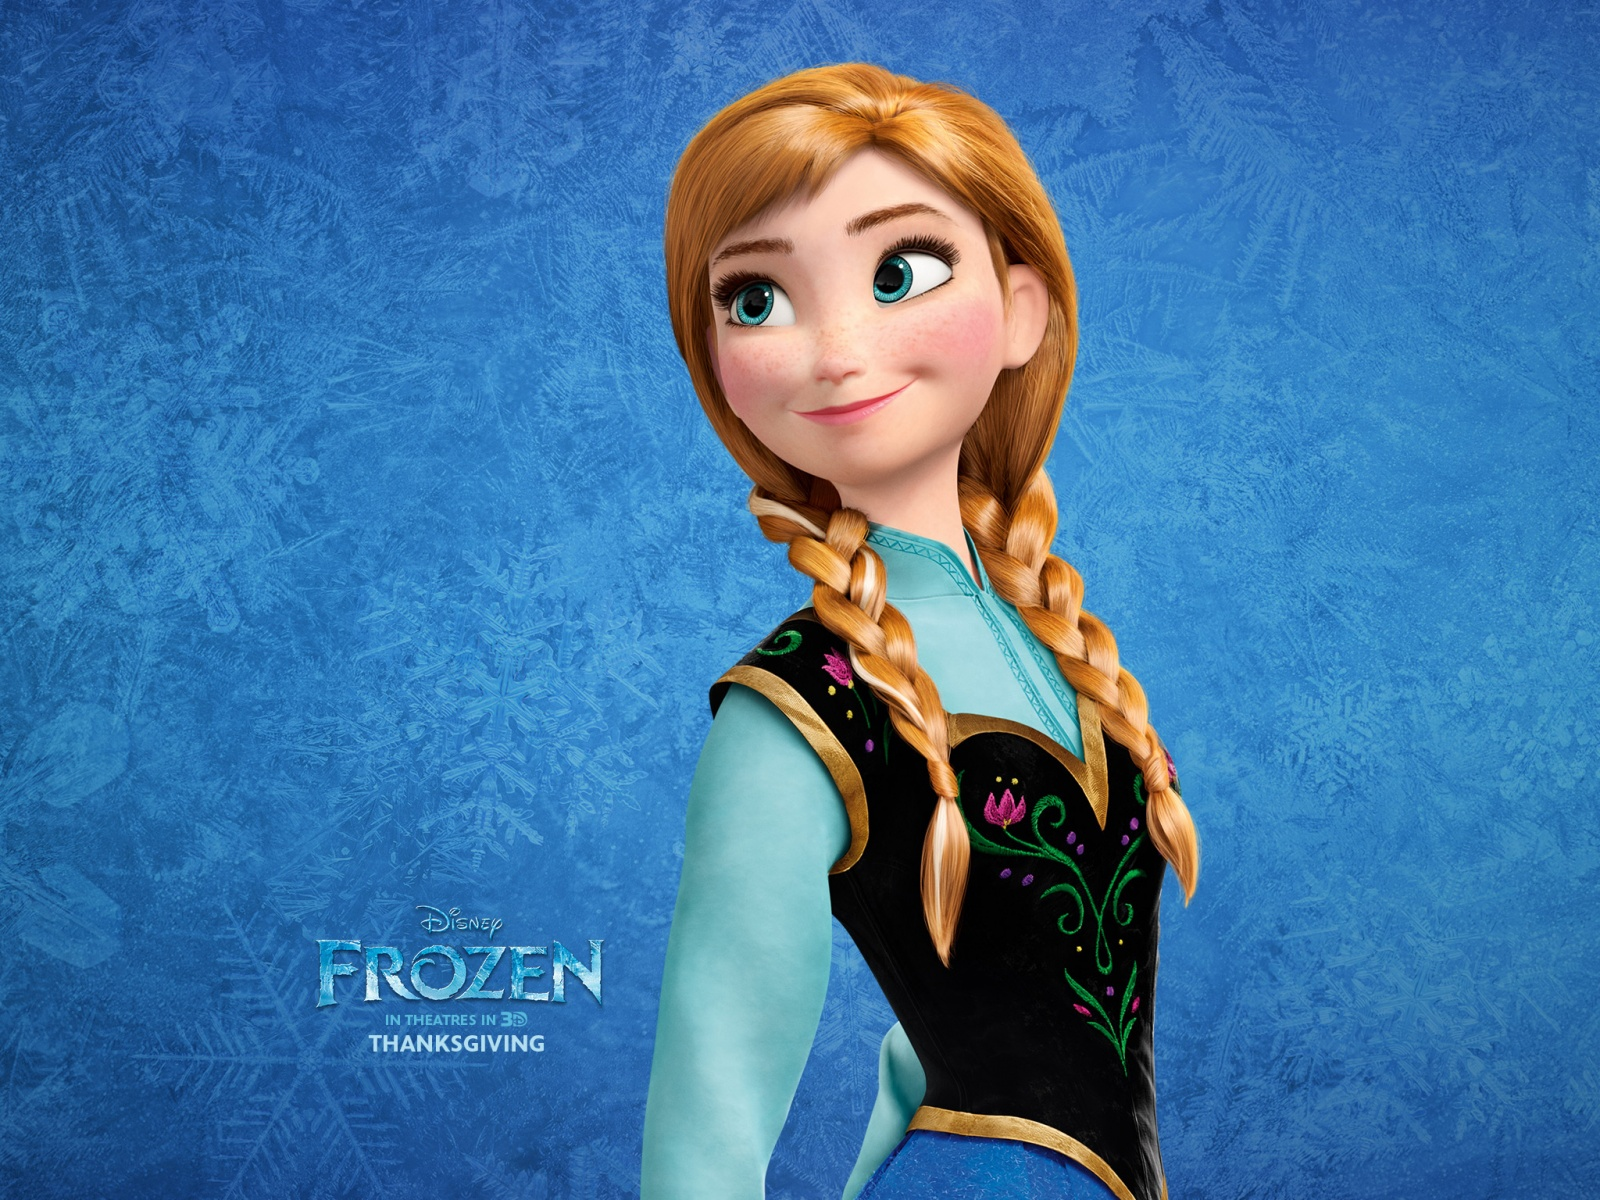 Wallpapers Frozen Posted By Zoey Cunningham